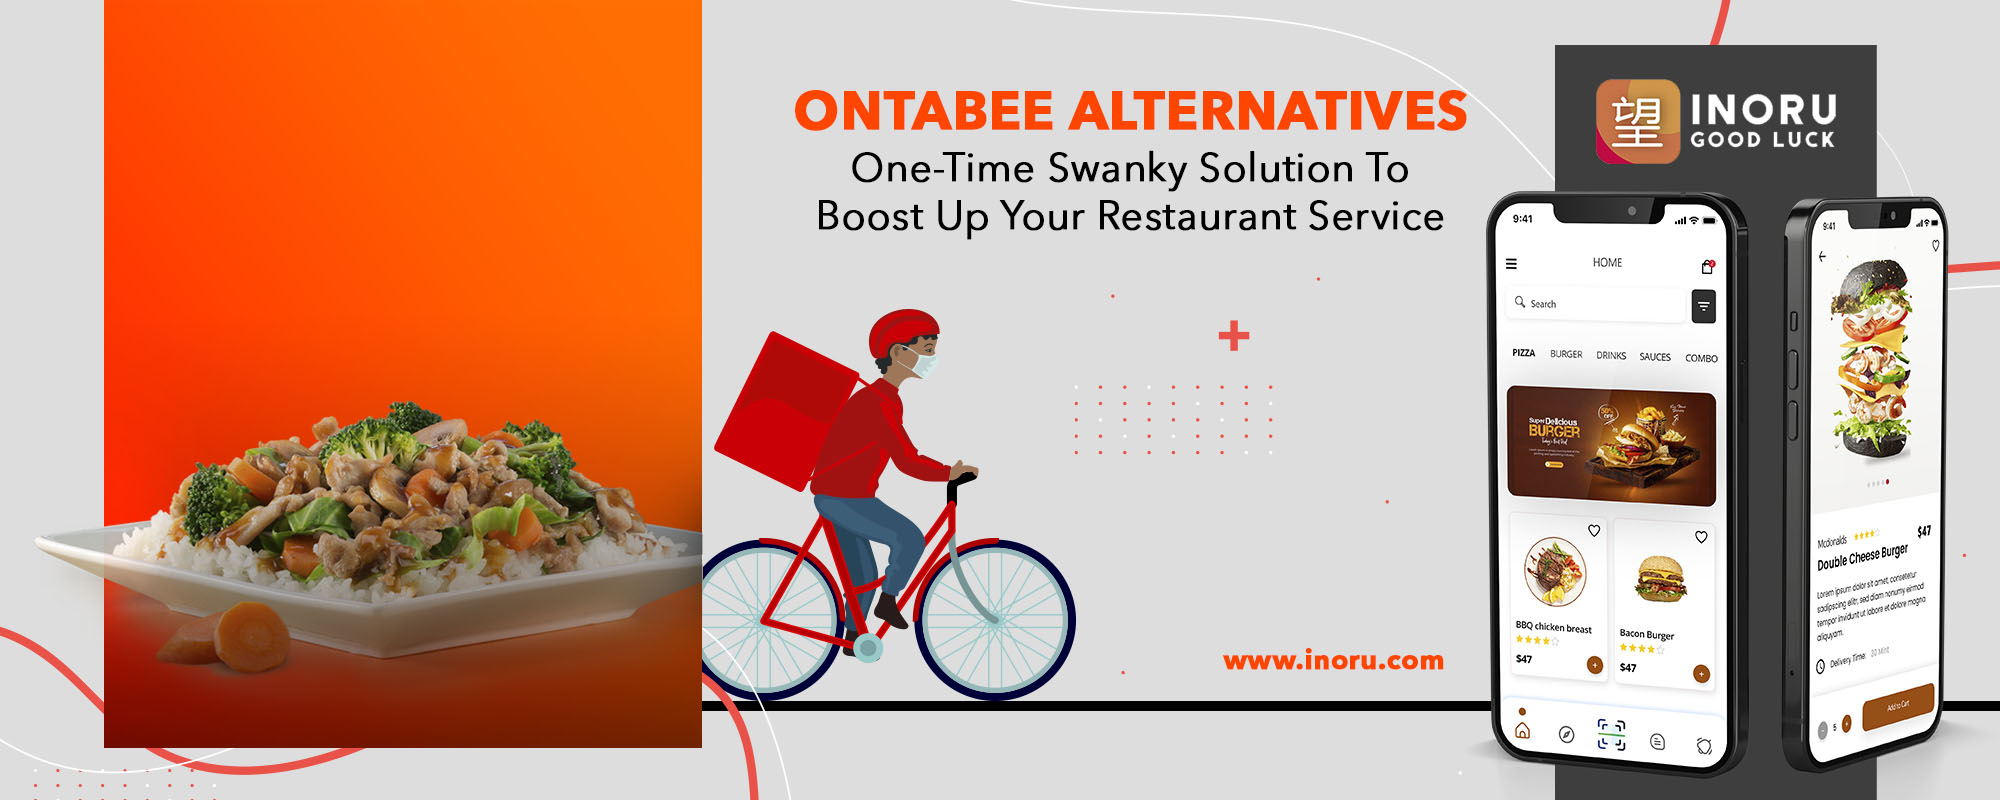 Ontabee Alternative,Ontabee Clone,Online Food Delivery,Delivery Restaurant near me,Food Delivery App